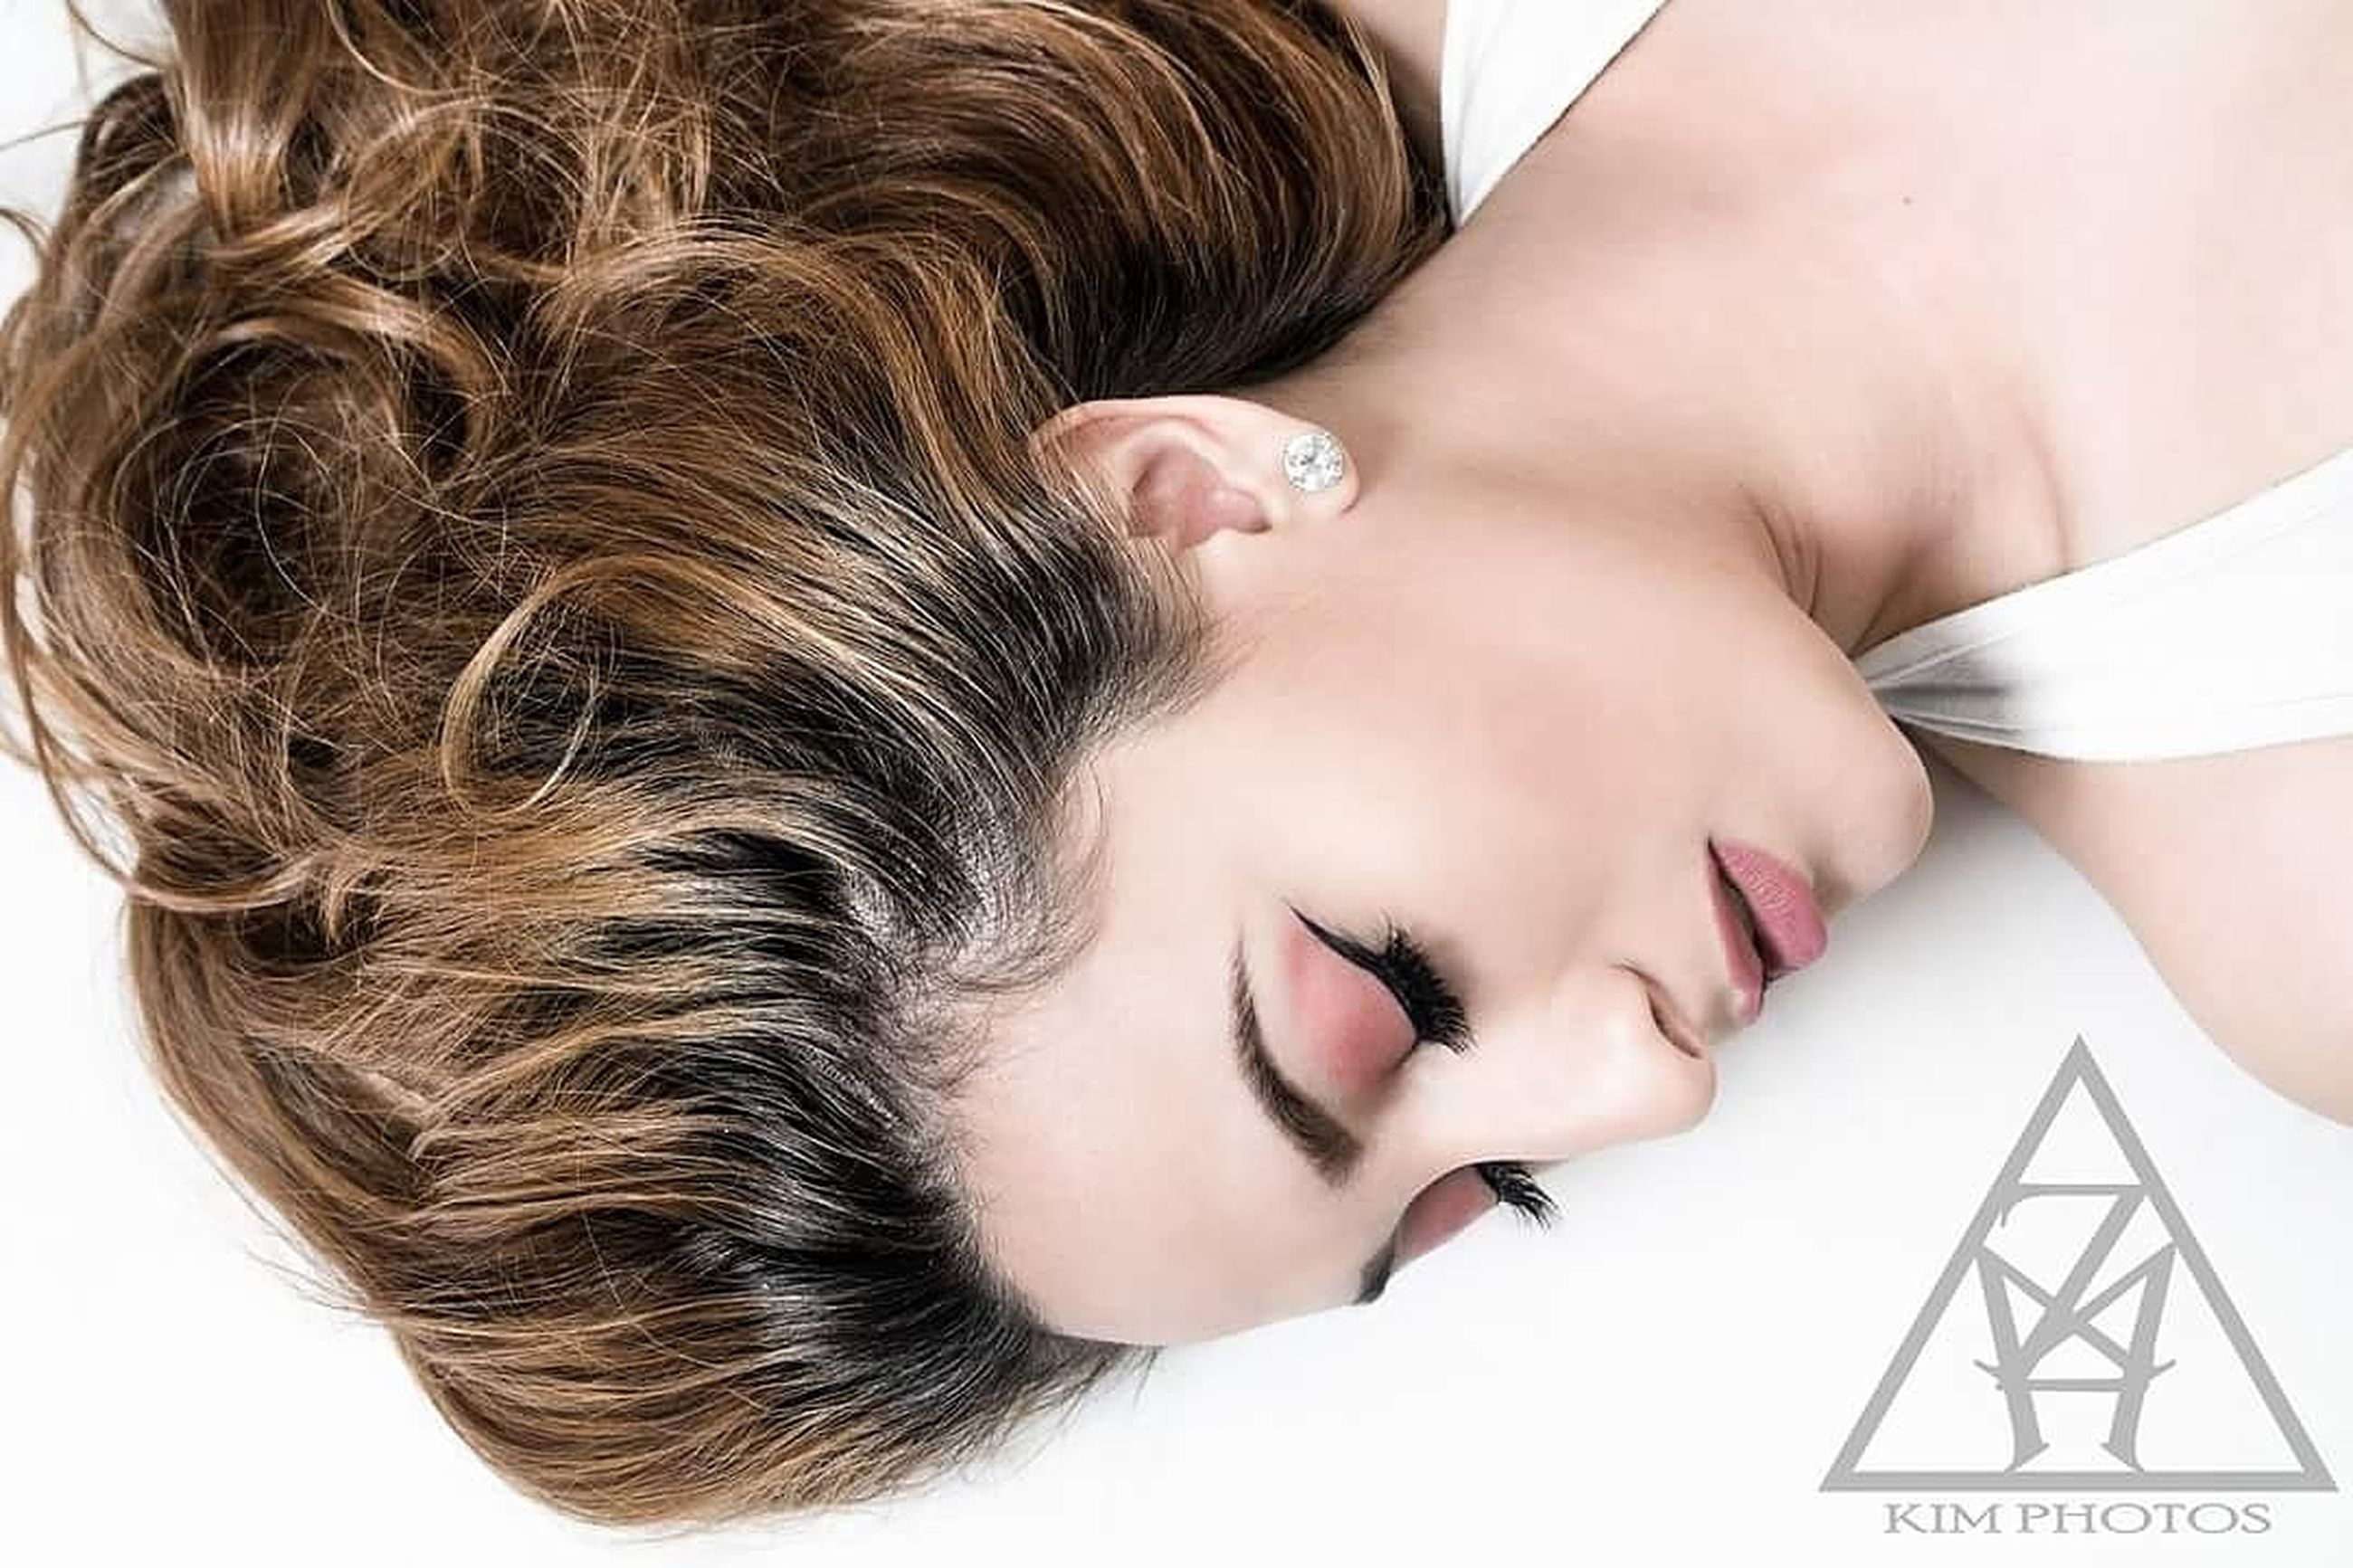 childhood, person, lifestyles, innocence, leisure activity, girls, cute, elementary age, headshot, close-up, indoors, relaxation, high angle view, young women, boys, babyhood, lying down, eyes closed